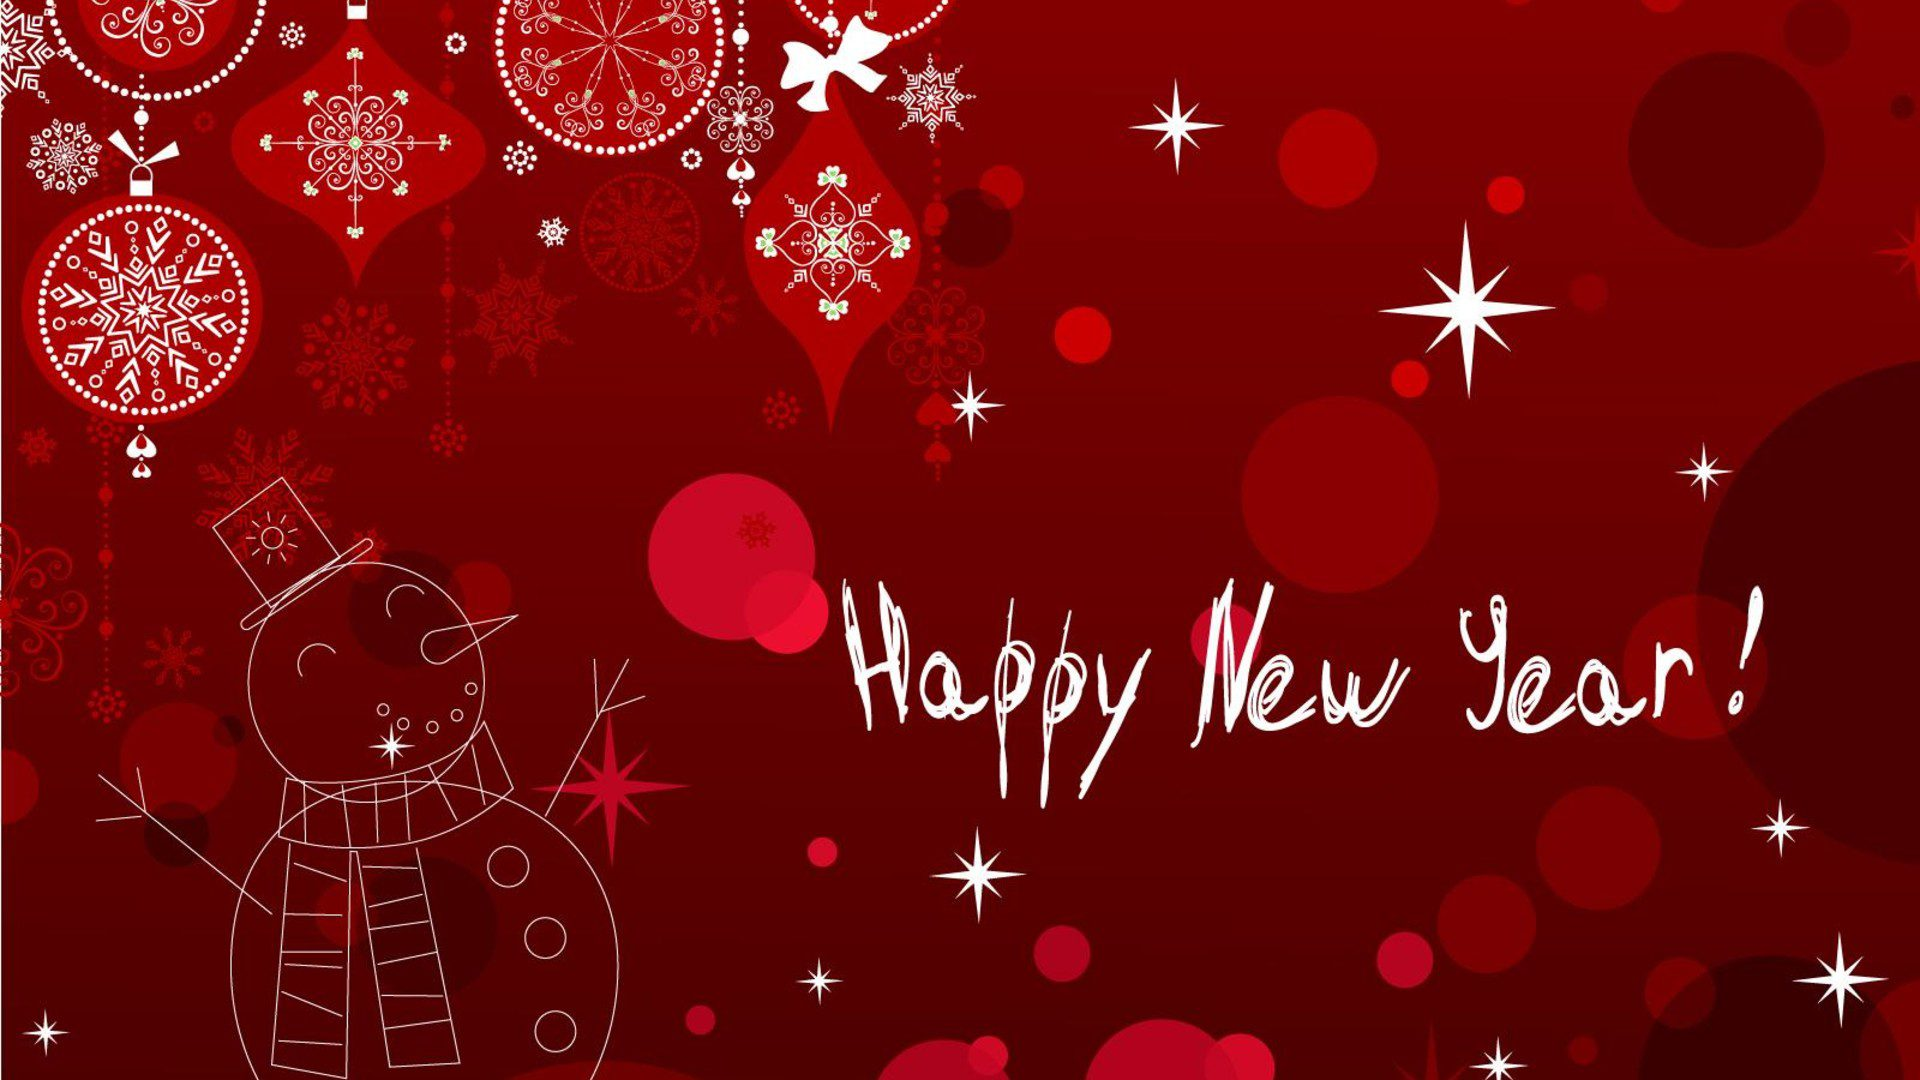 happy-new-year-2016-red-funny-wallpaper_1920x1080